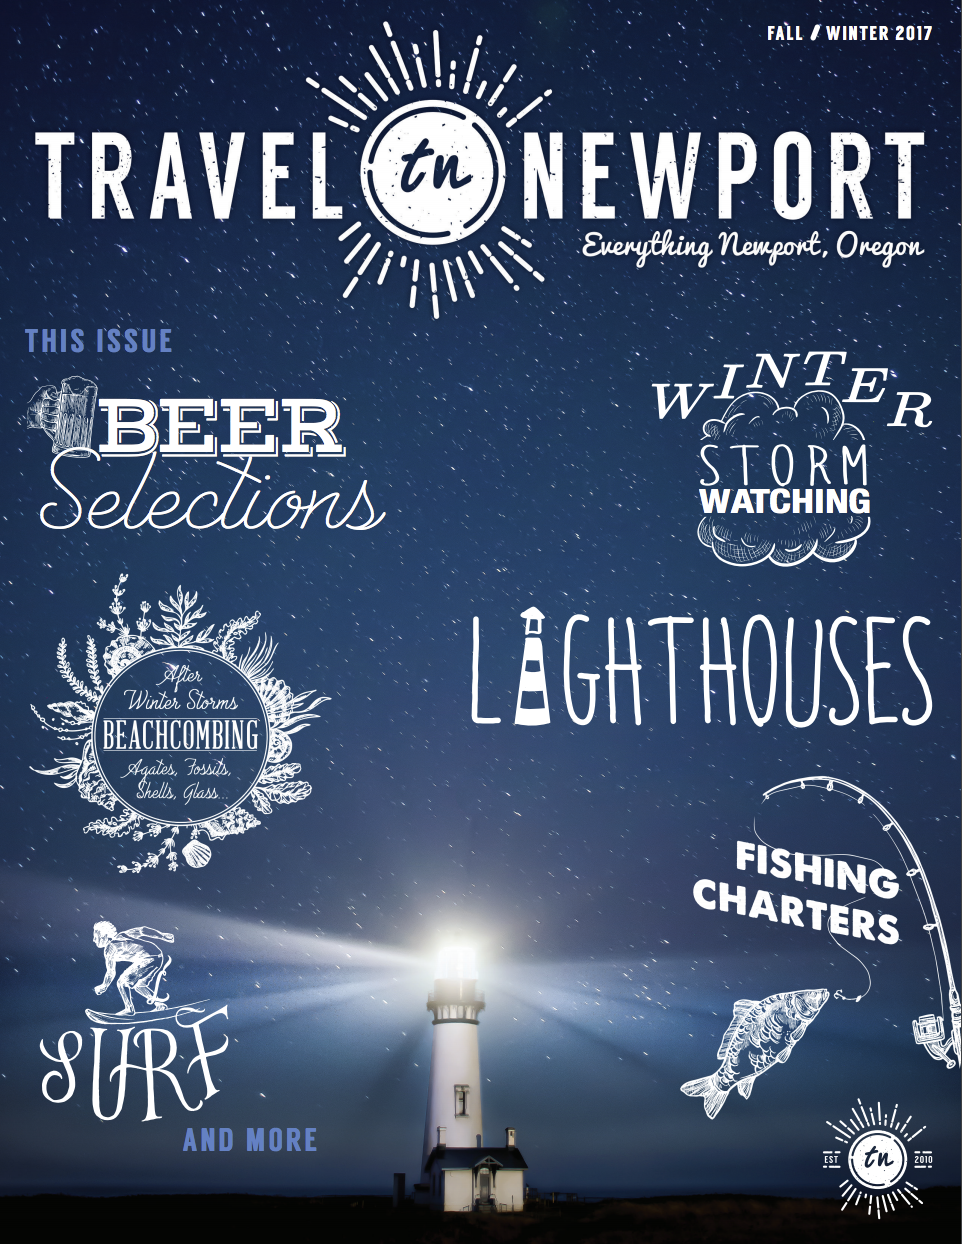 Travel Newport Winter(2017) - Lead Photographer